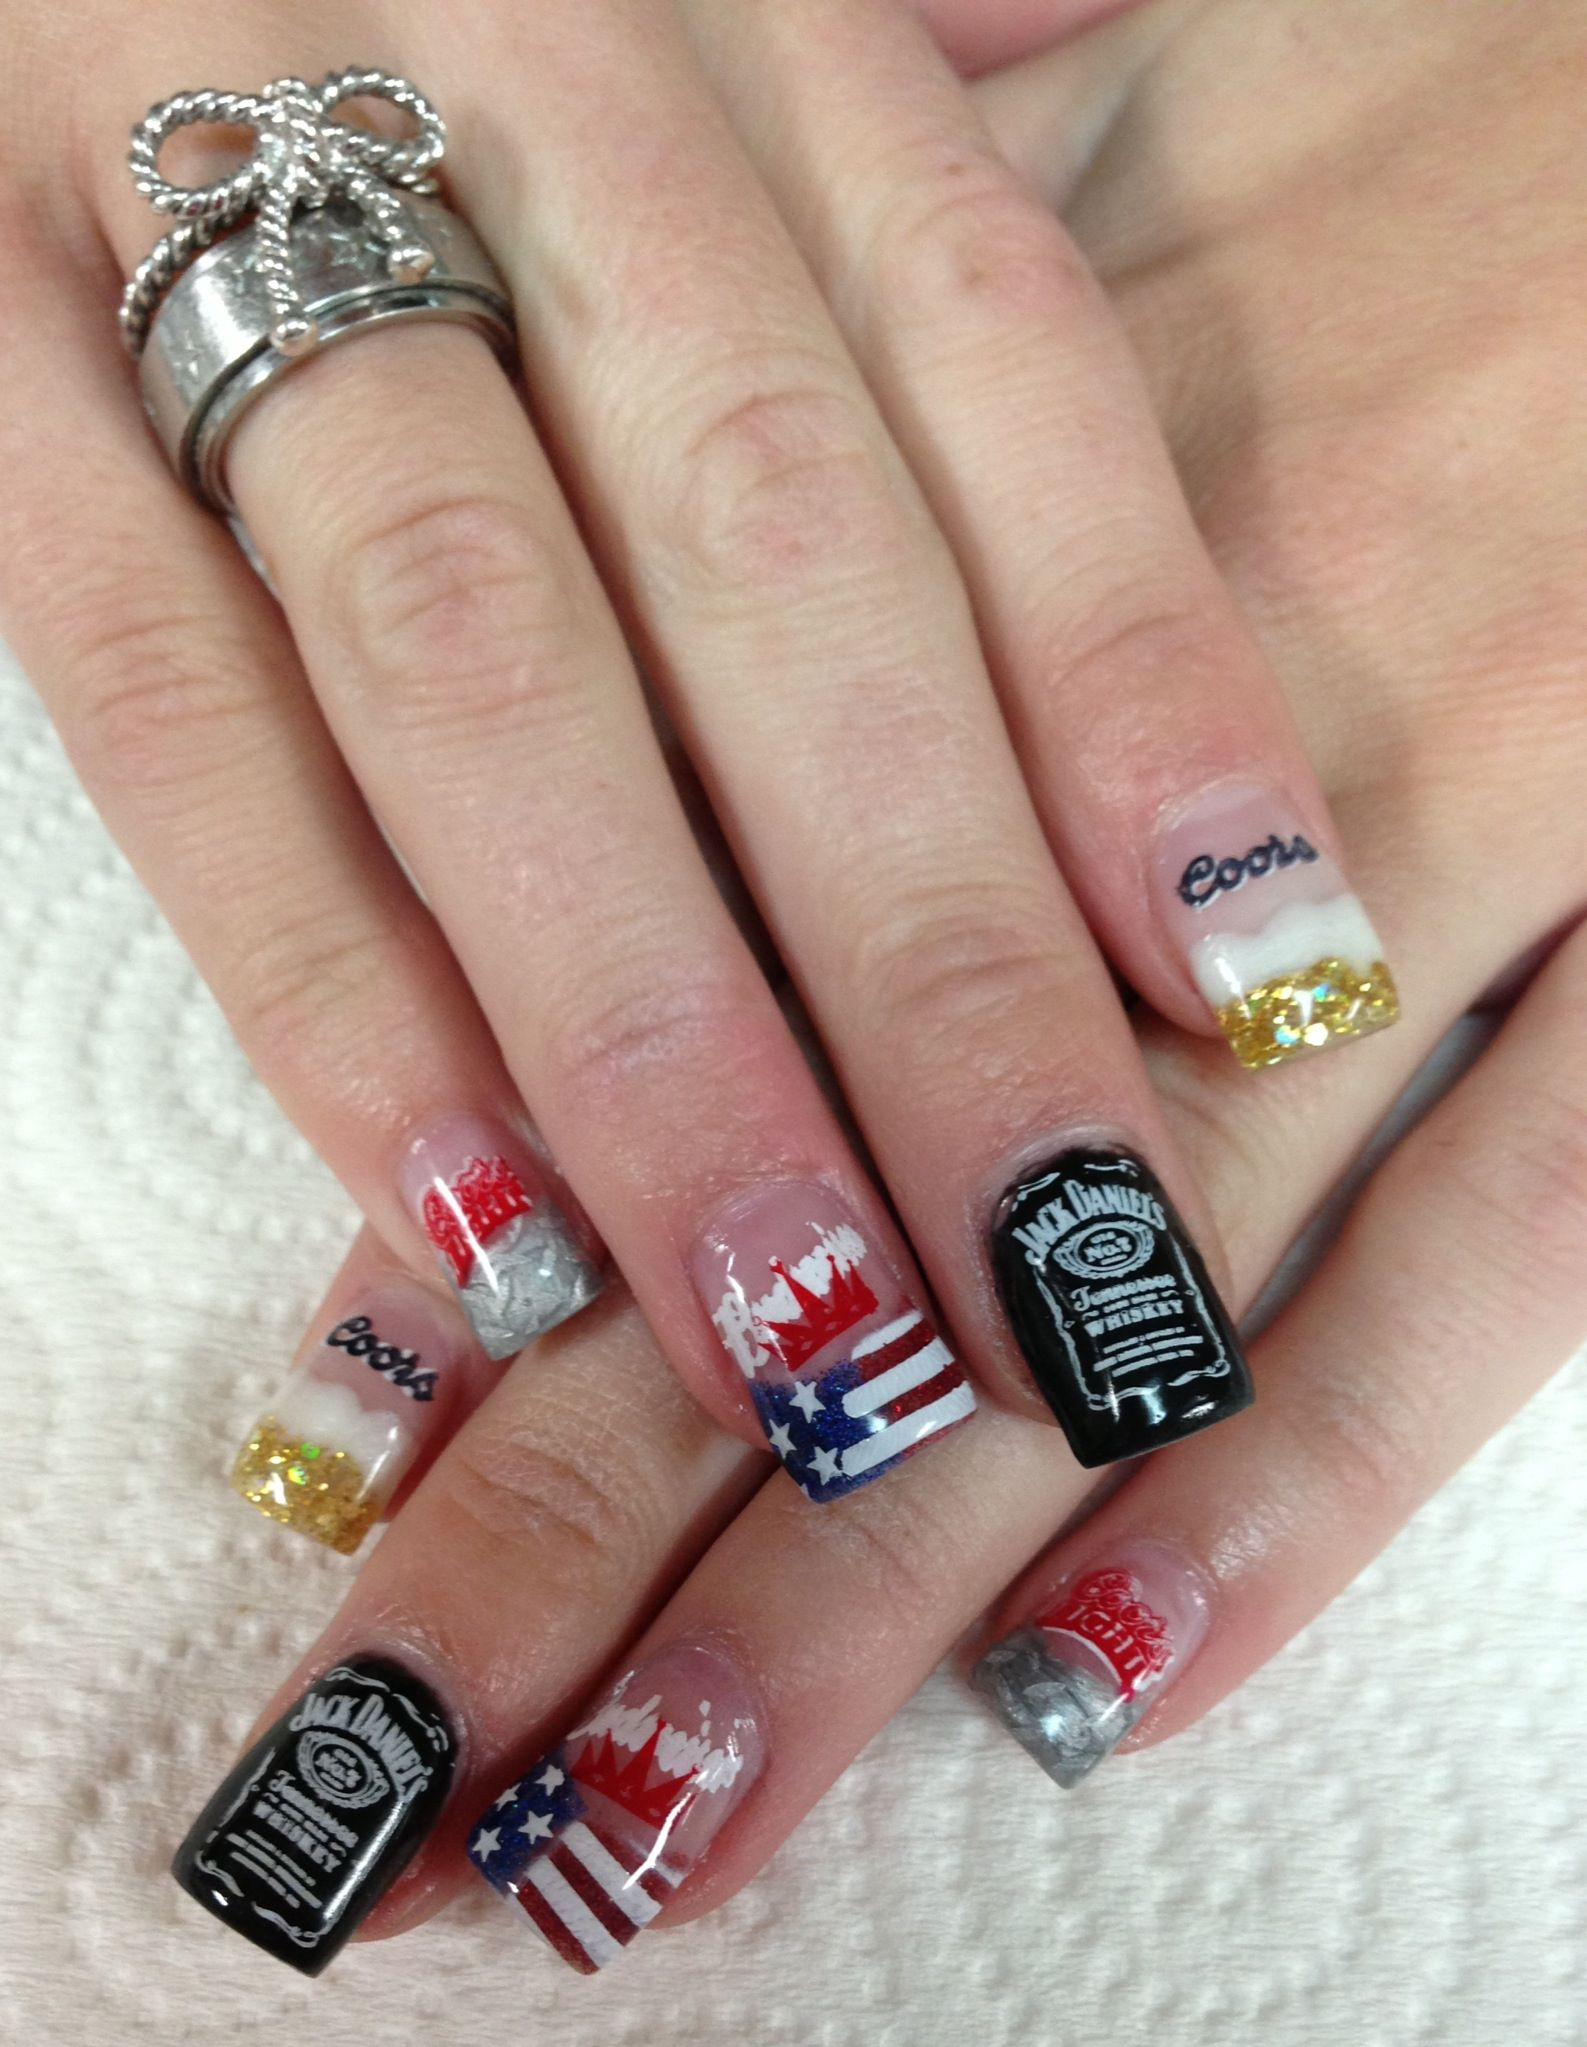 Redneck nails for night in the country, yerington, nv Beer Nails ...